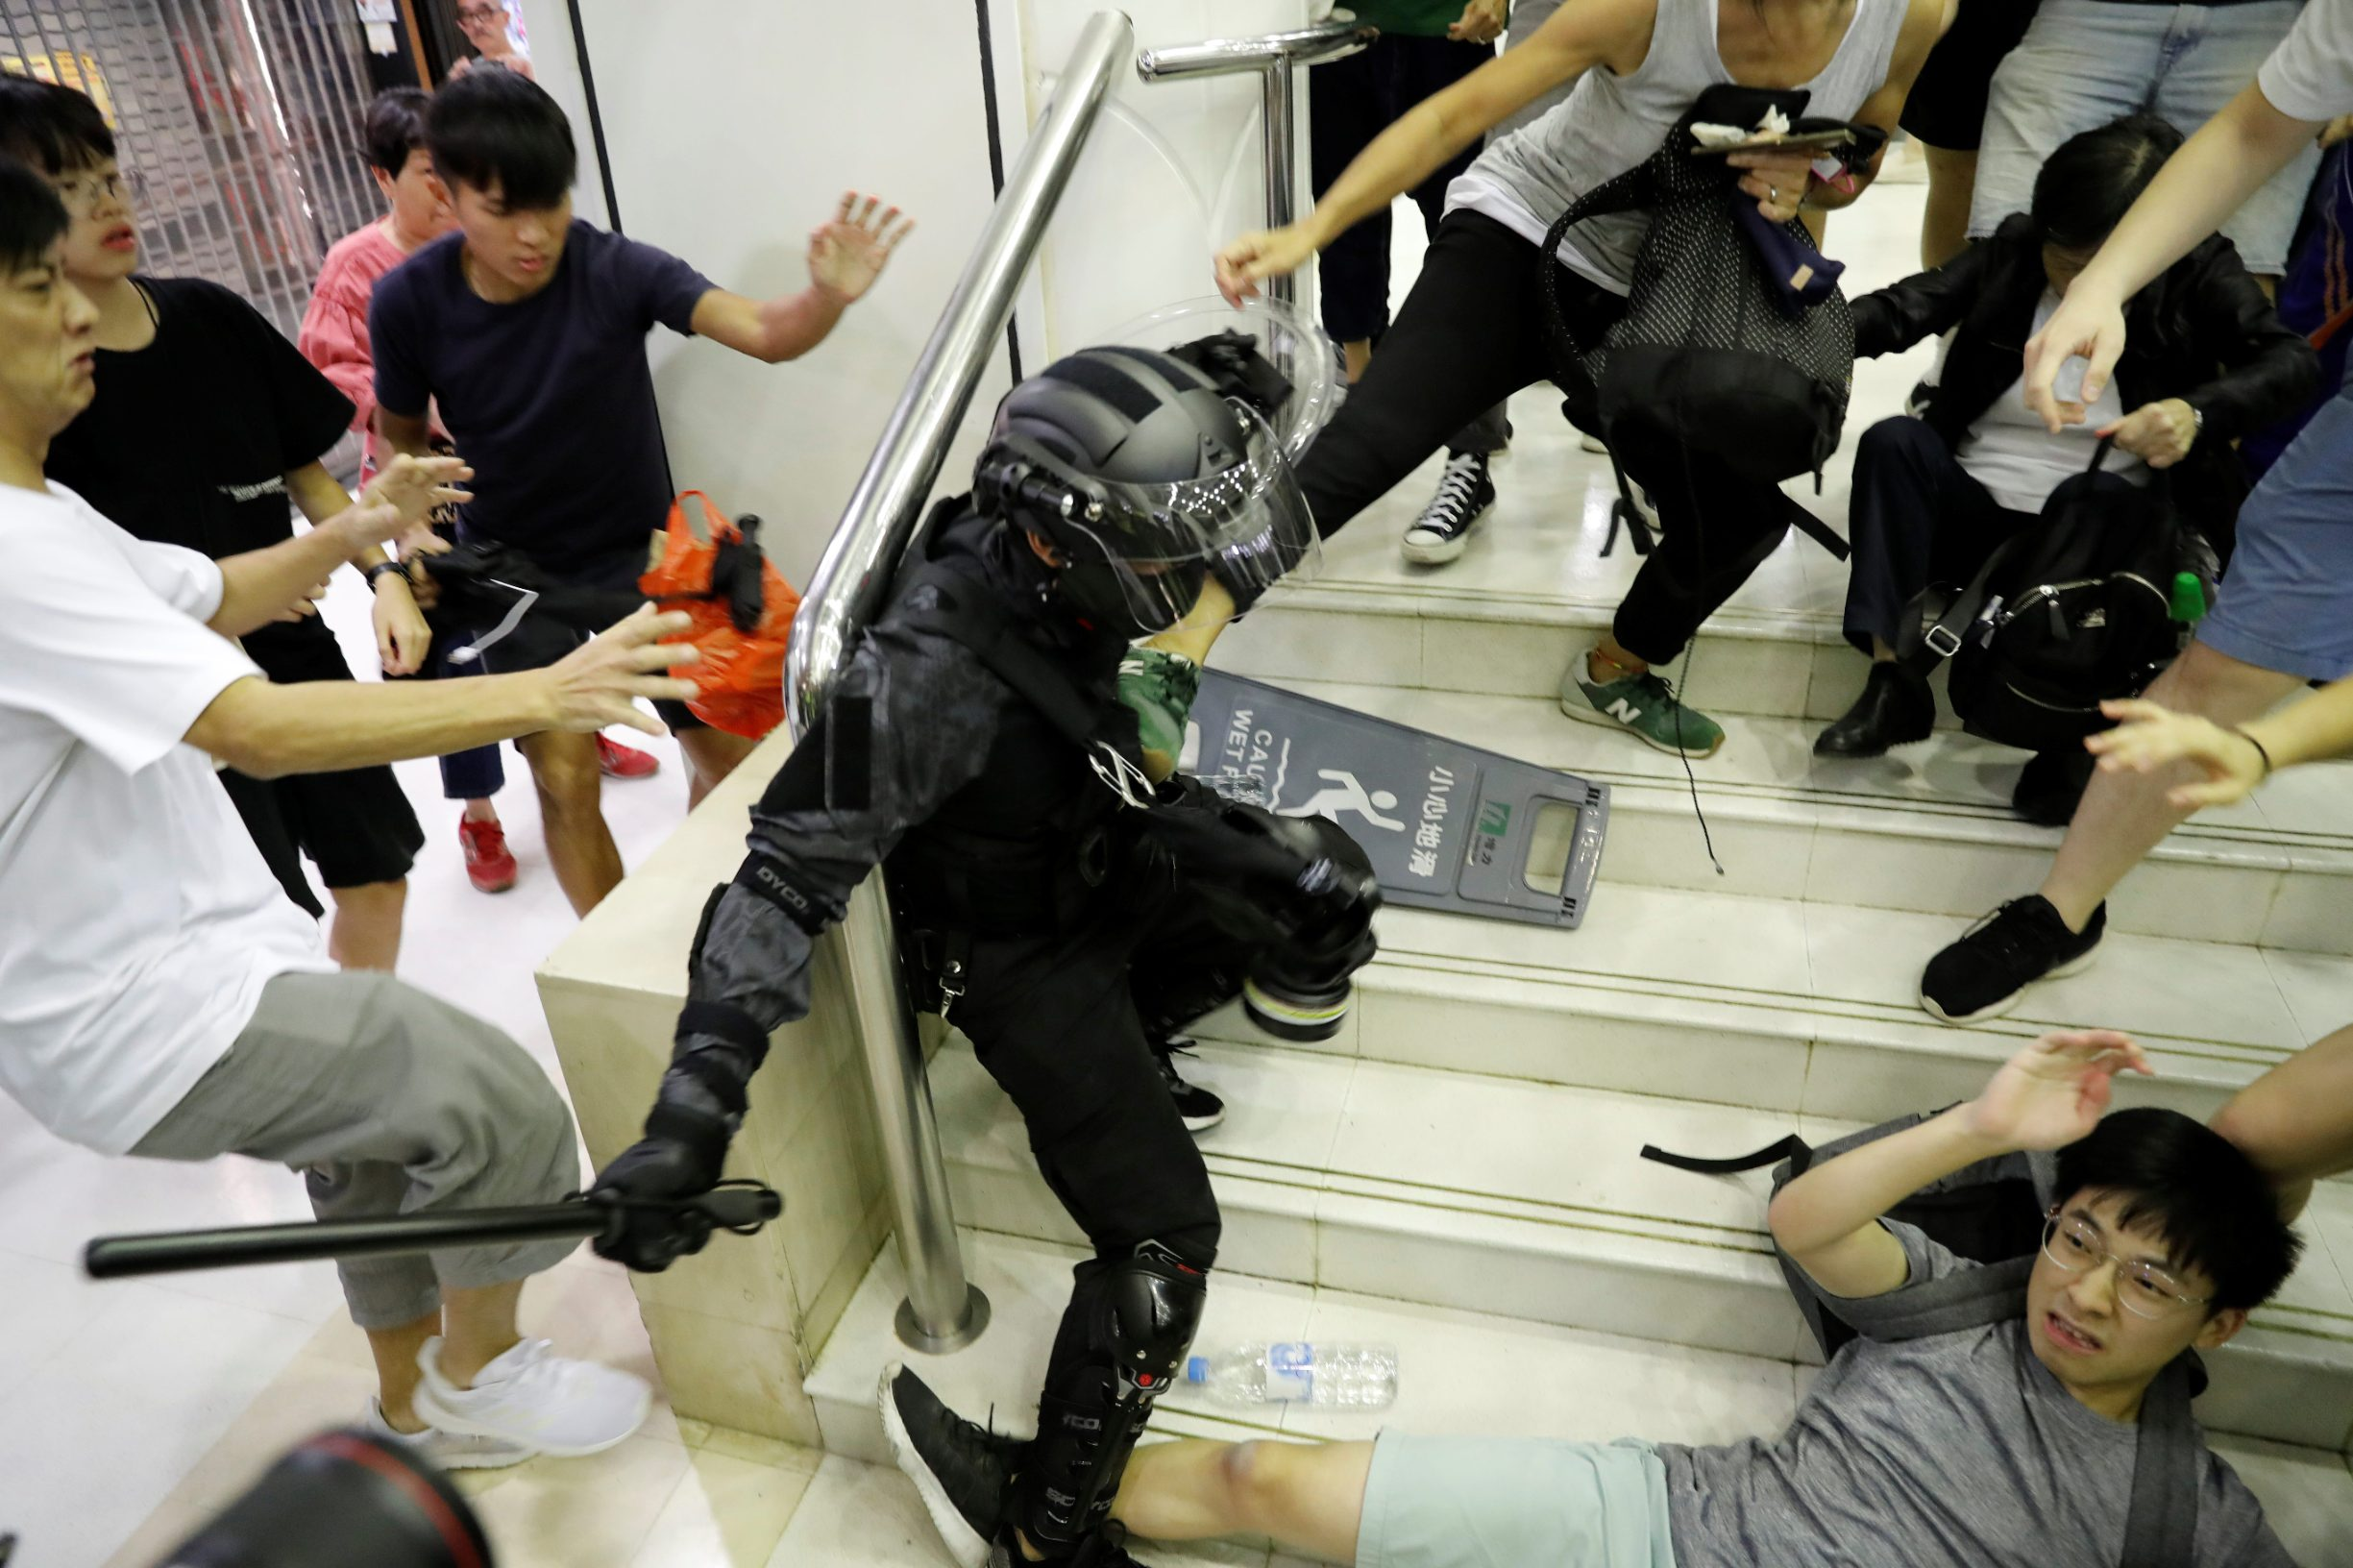 People scuffle with a riot police officer at a shopping mall in Tai Po in Hong Kong, China November 3, 2019.  REUTERS/Kim Kyung-Hoon